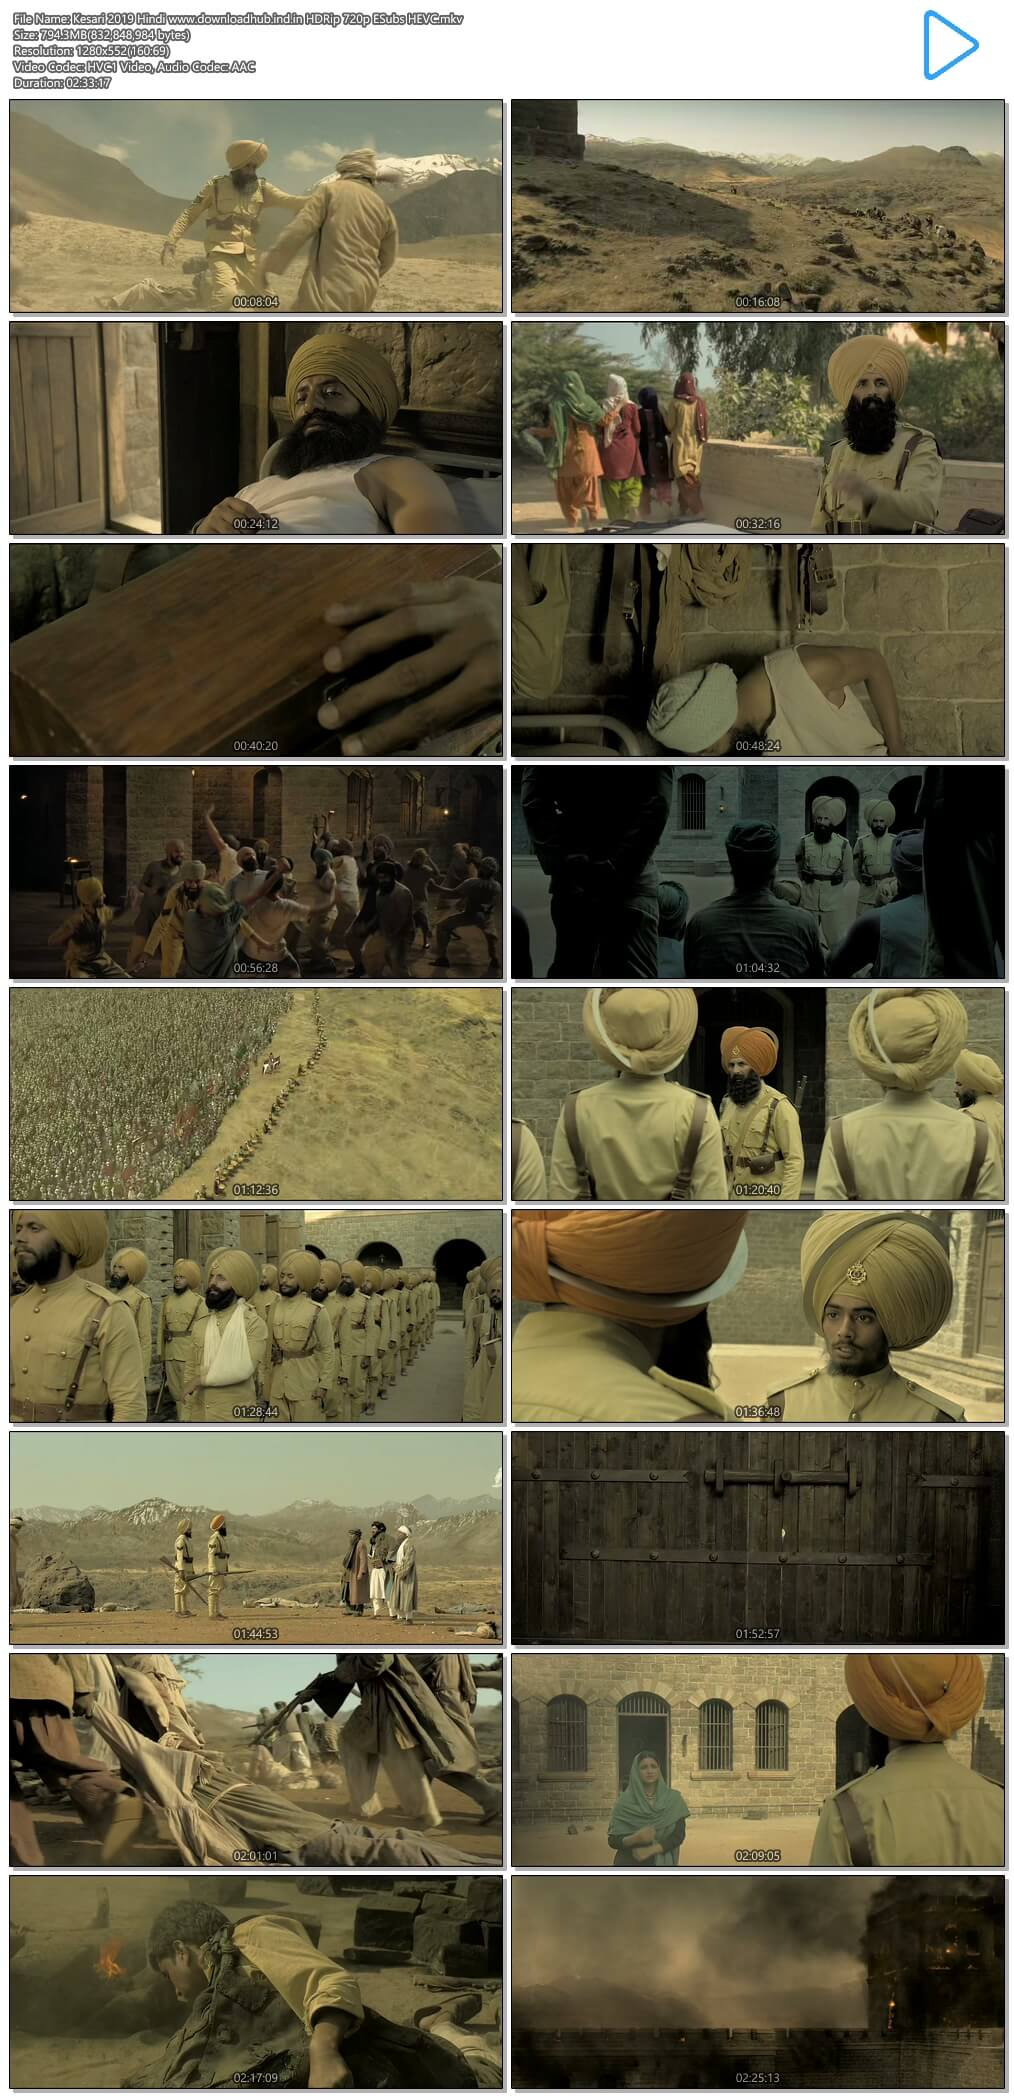 Kesari 2019 Hindi 800MB HDRip 720p ESubs HEVC